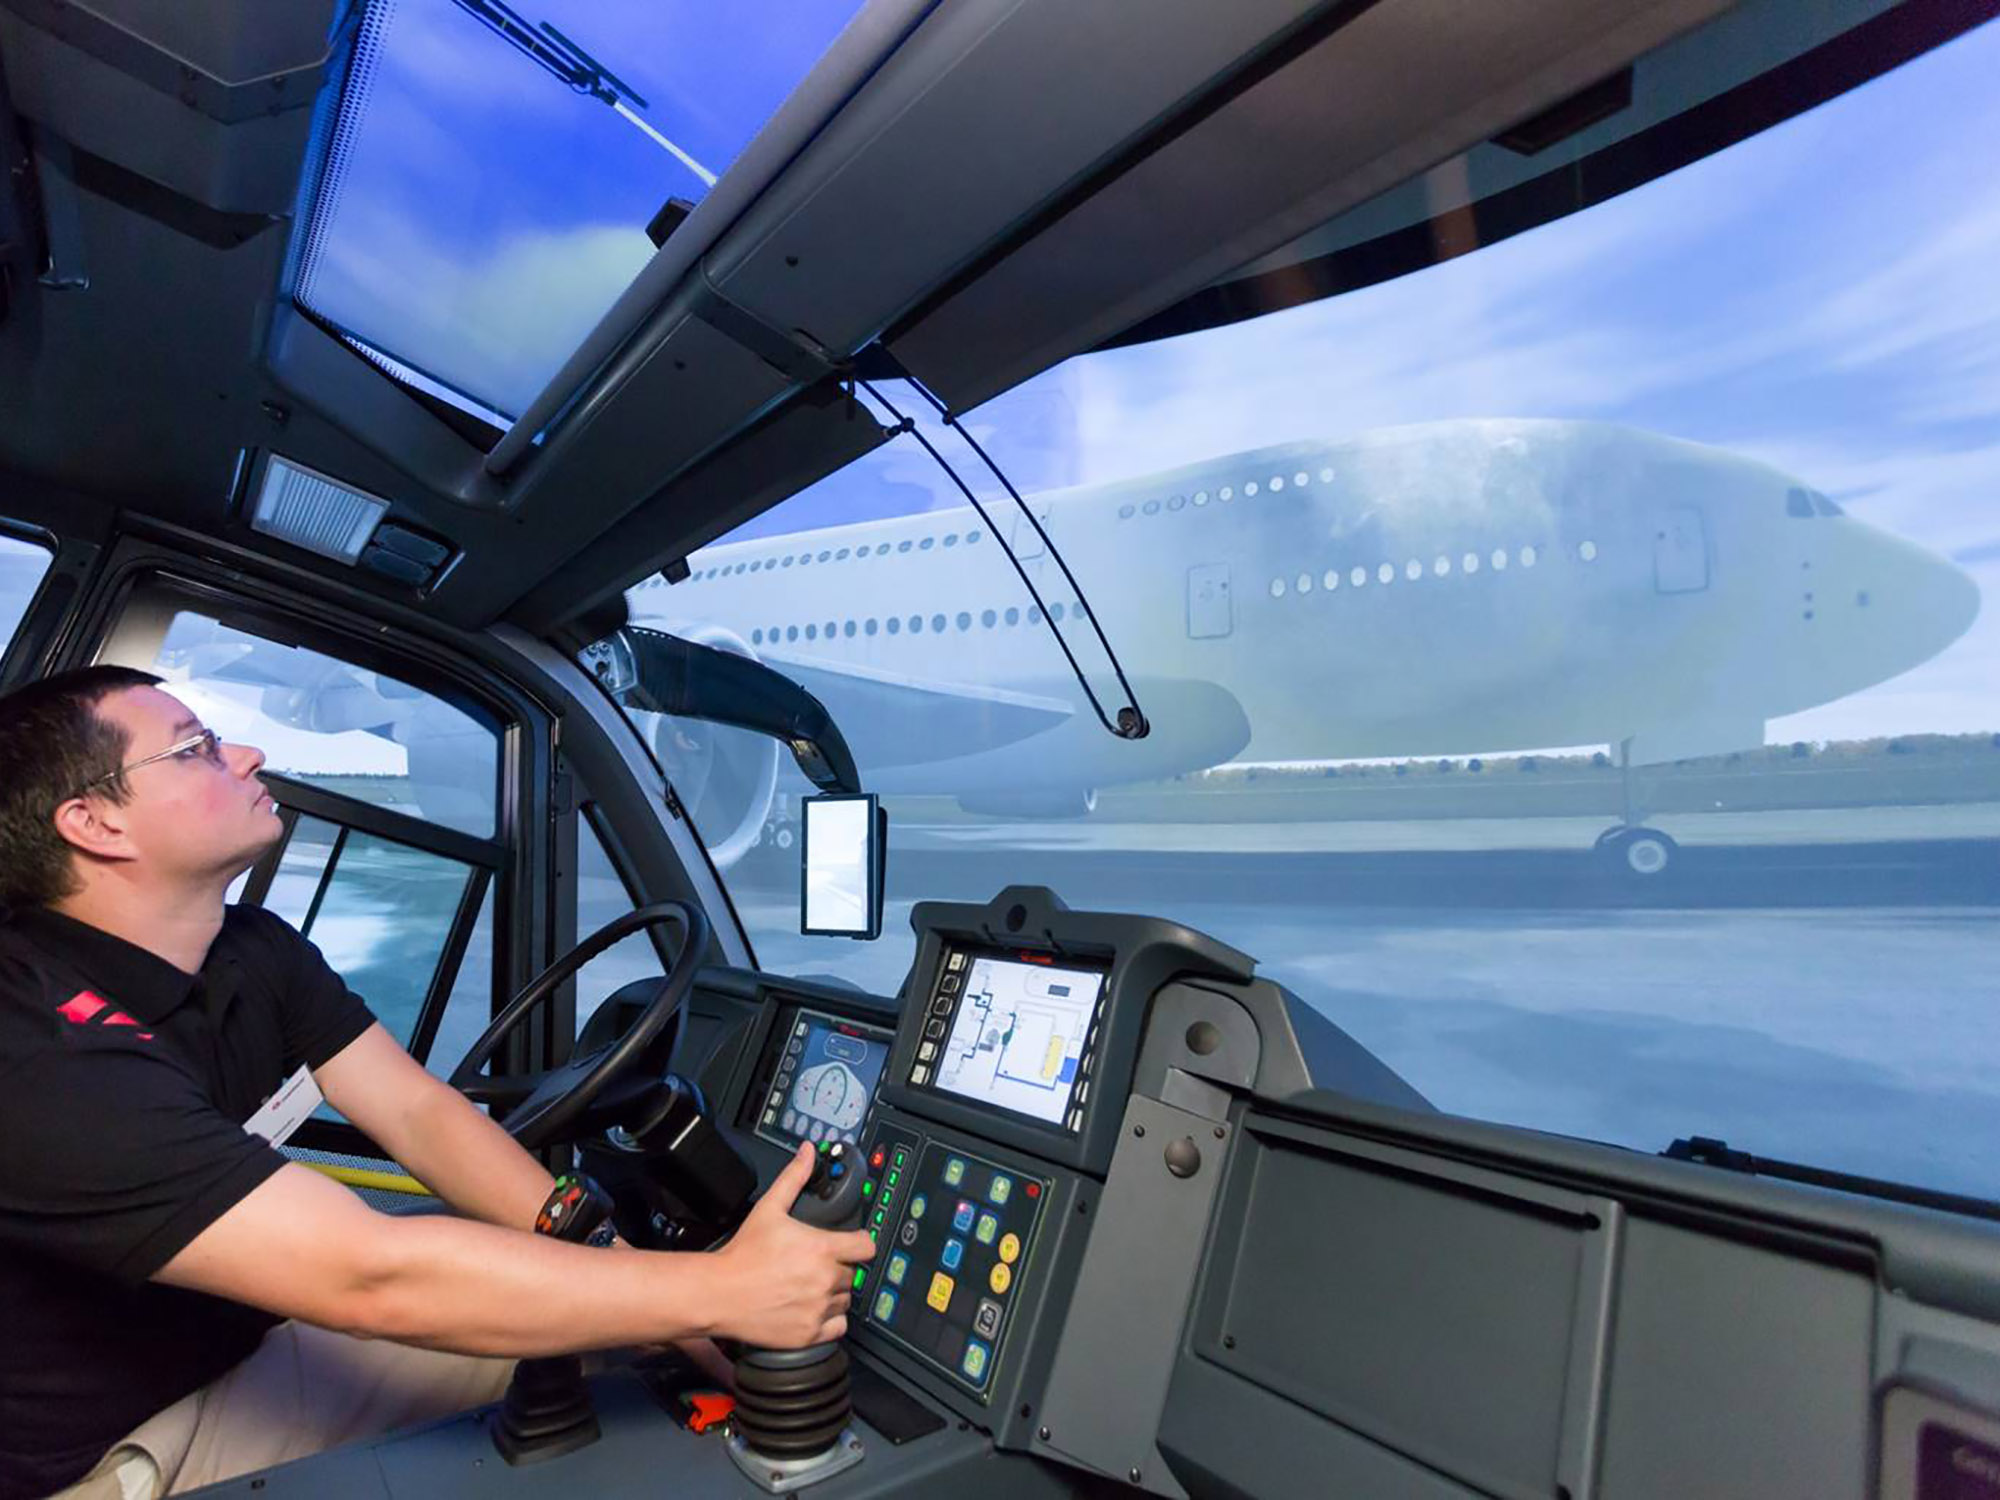 A trainee is operating the HRET to extinguish an A-380 interior fire from inside a full cabin ARFF simulator.